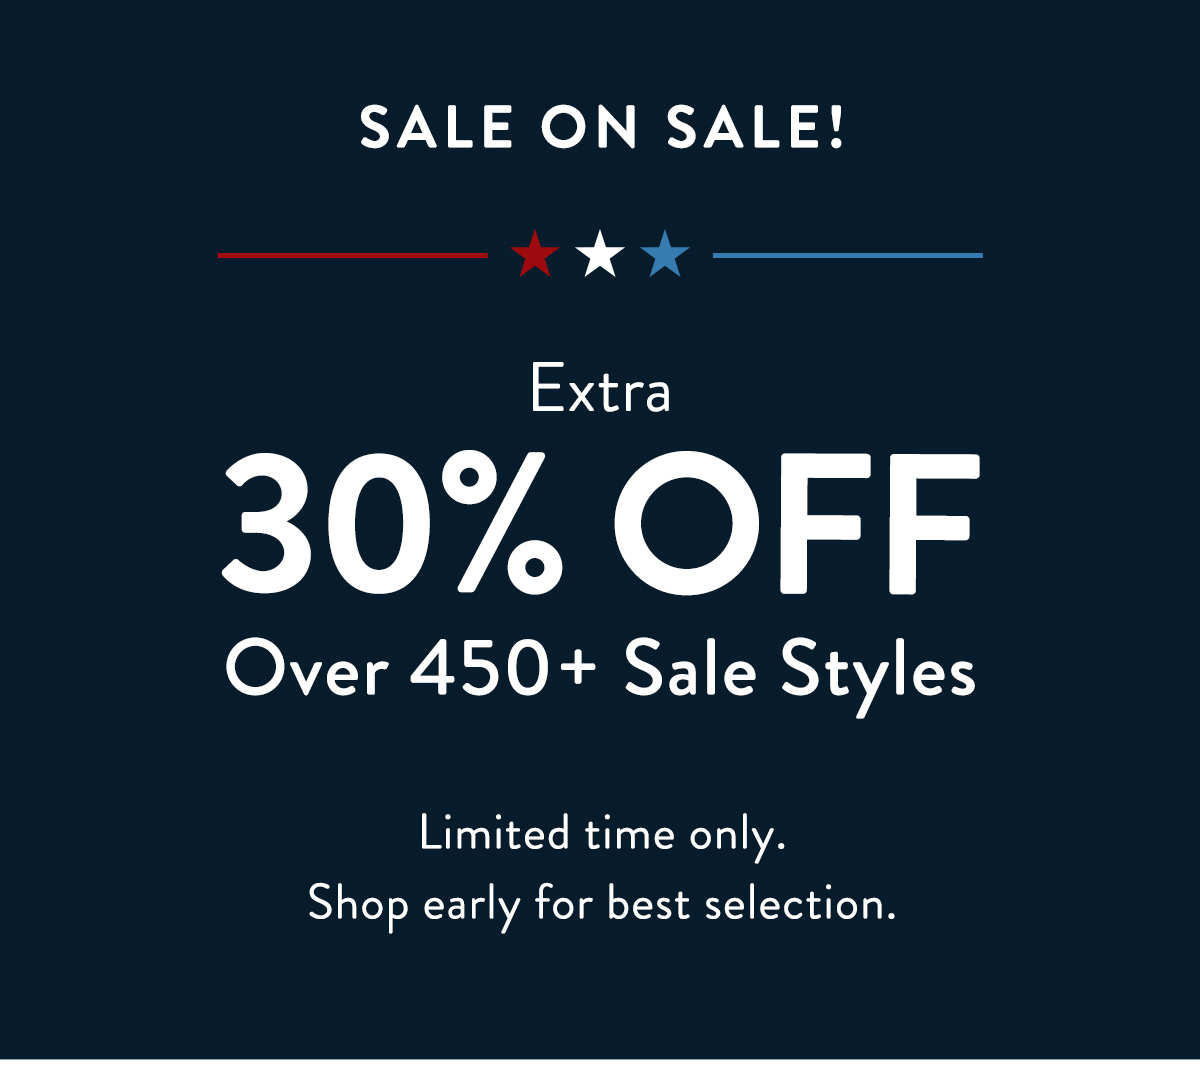 Sale On Sale! Extra 30% Off Over 450+ Sale Styles. Limited Time Only. Shop early for best selection.